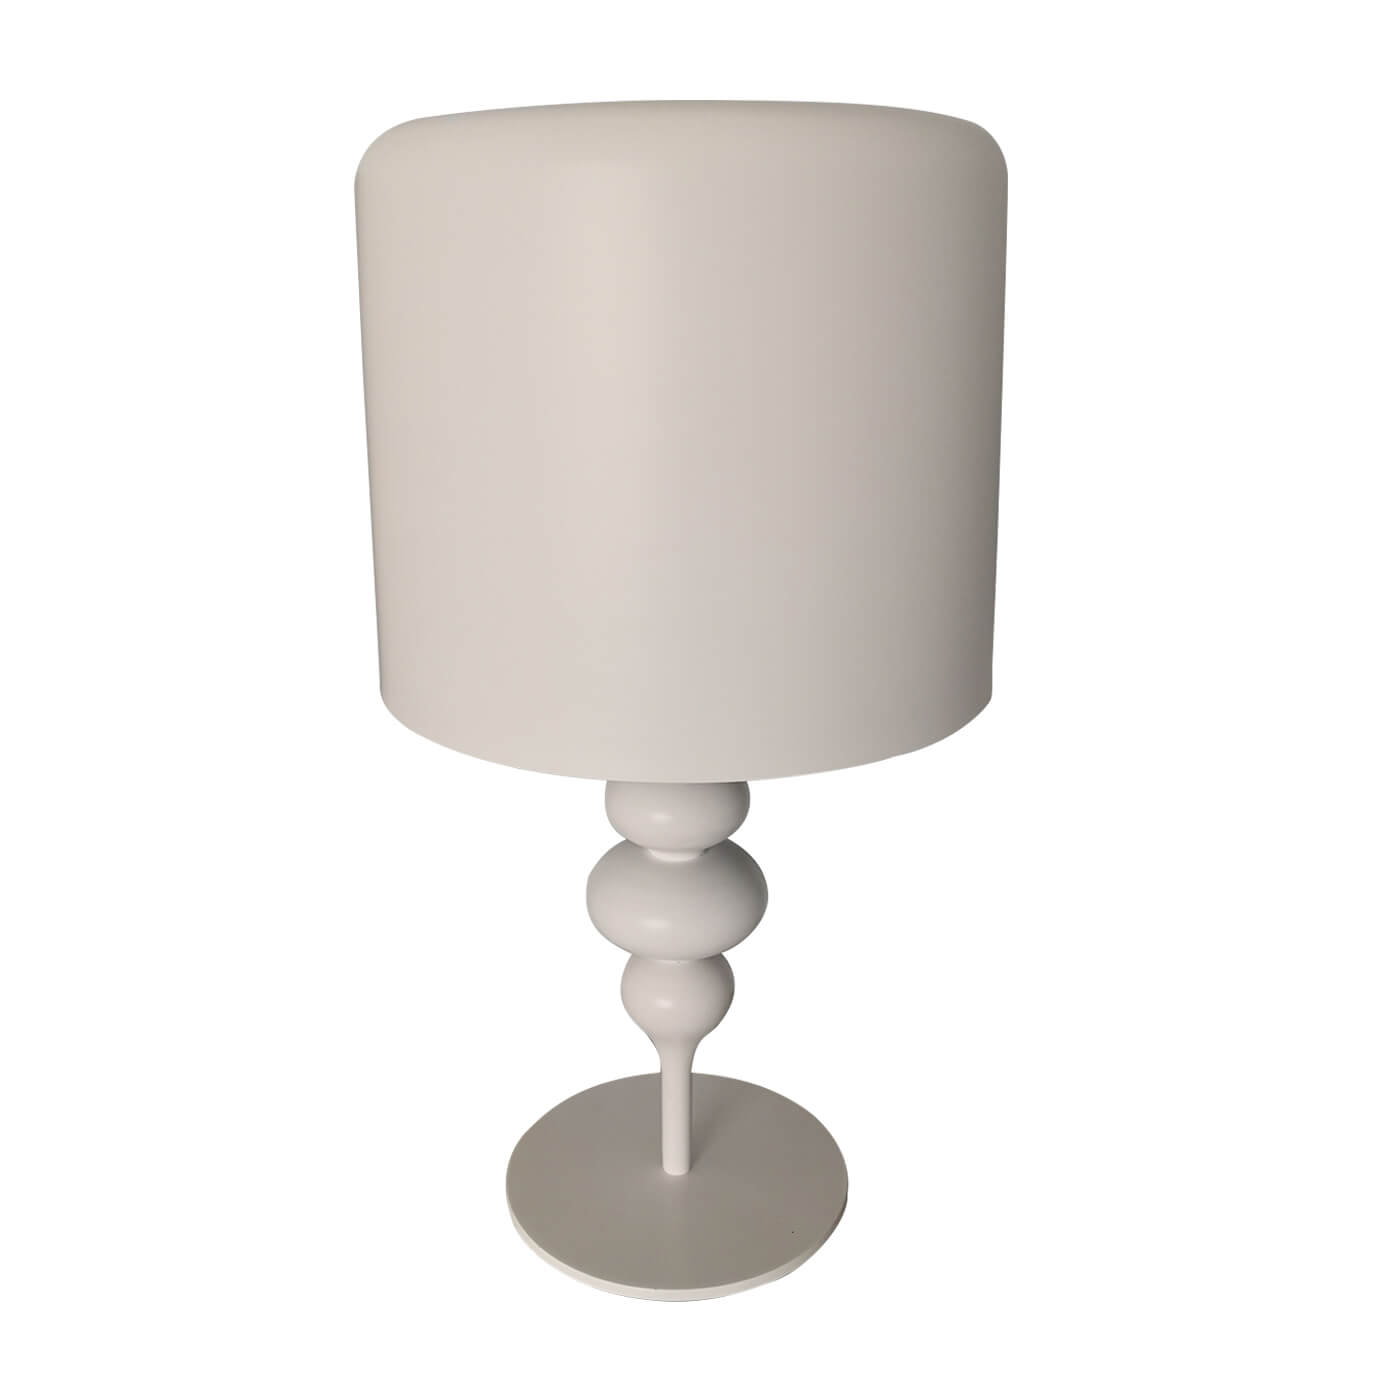 Fanuli Drop white metal table lamps, pair, second hand